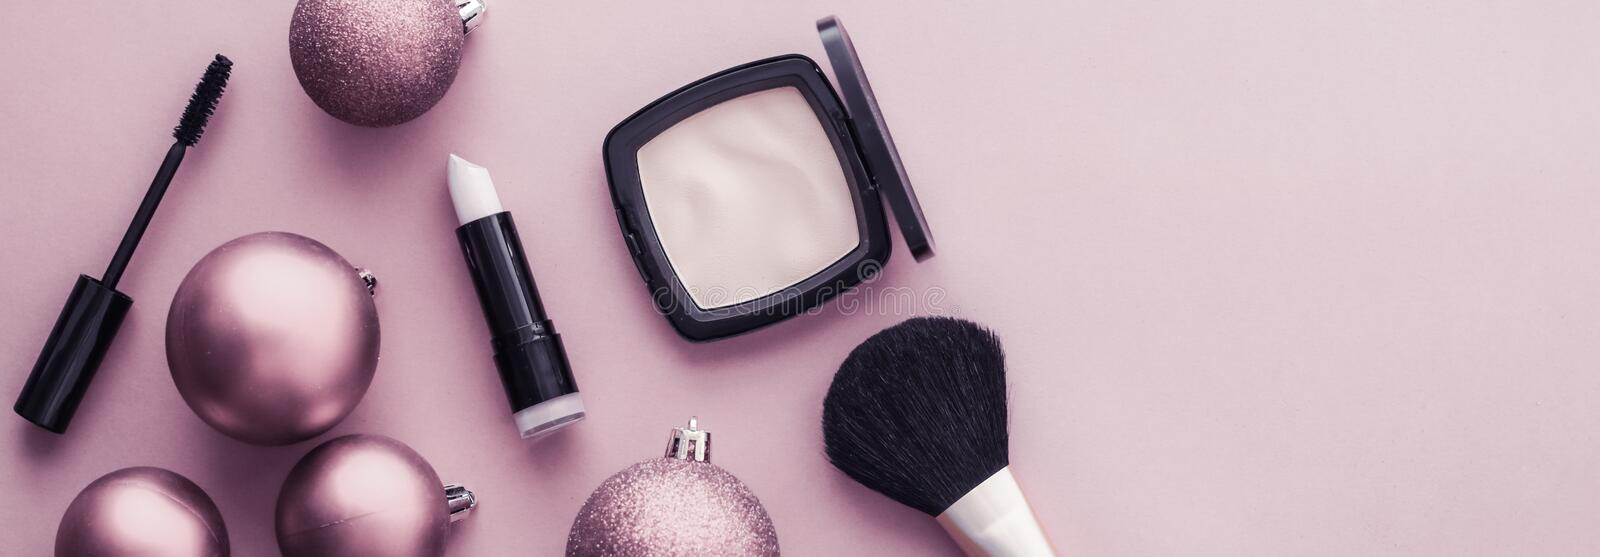 Make-up and cosmetics product set for beauty brand Christmas sale promotion, luxury purple flatlay background as holiday design royalty free stock photos